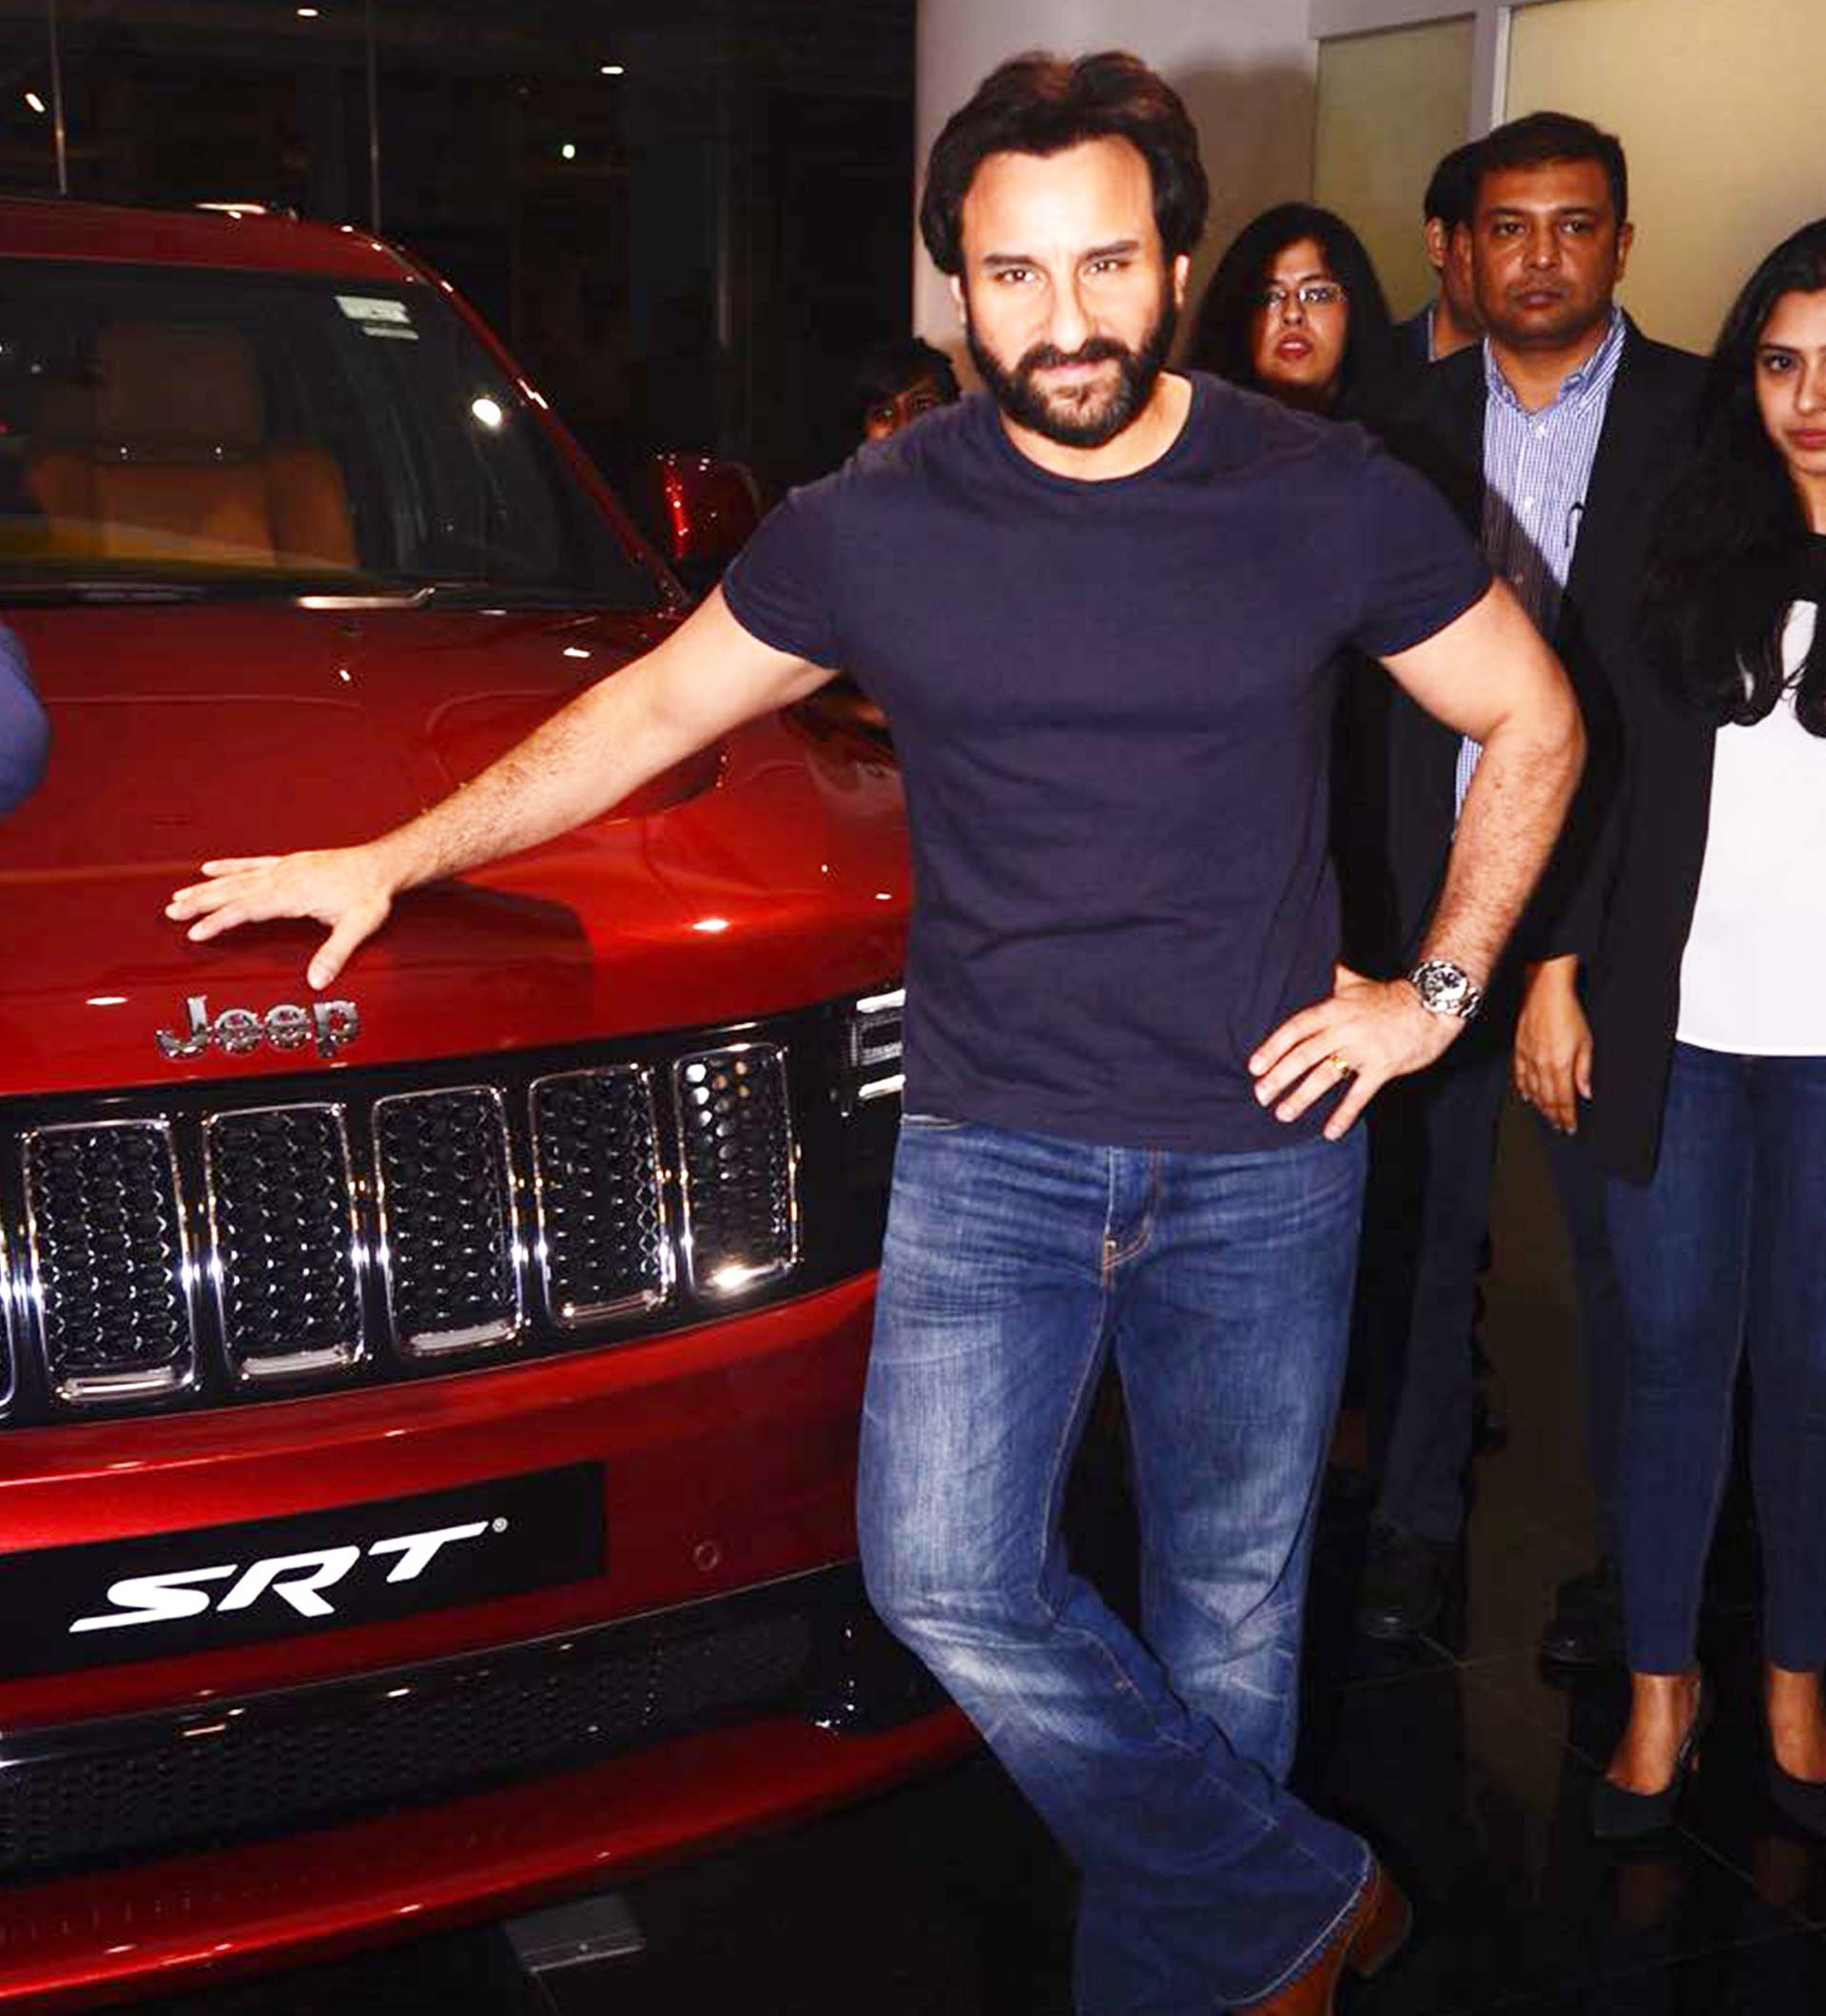 grand new avanza g 1.3 2017 toyota veloz 2018 saif ali khan has bought himself a sensible family car or